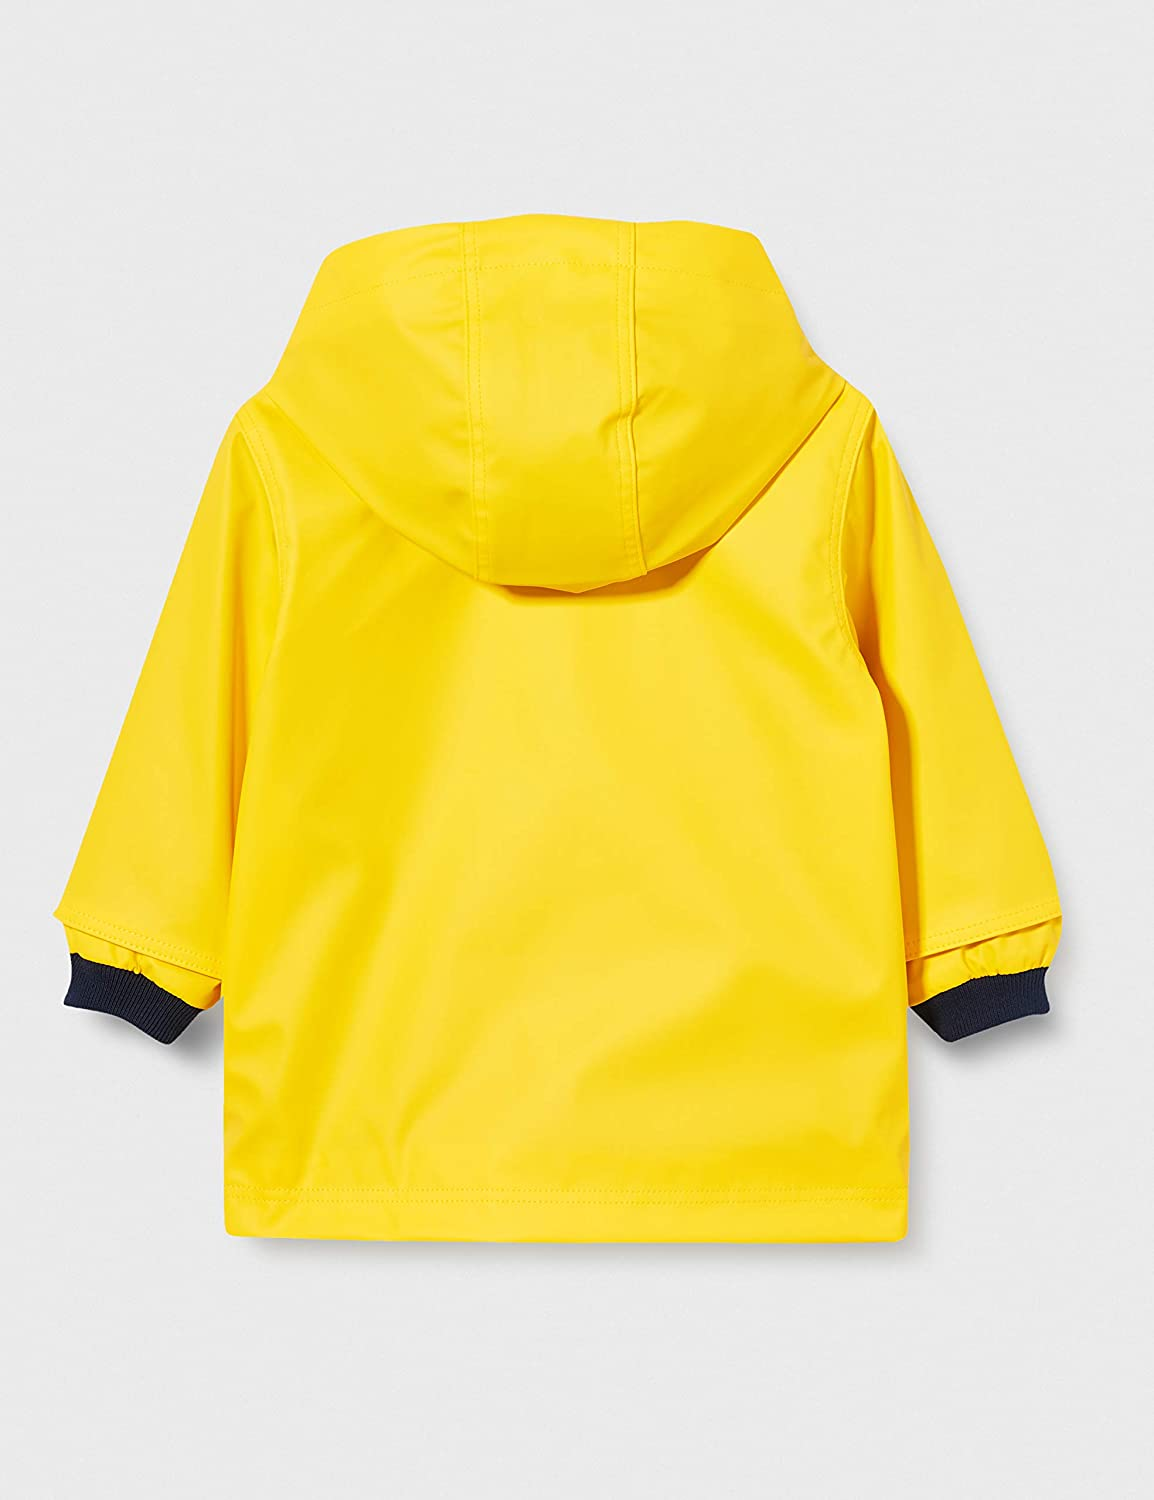 Jaune F 3 Years Size: 36Months Yellow Petit Bateau Boys 5350401 Raincoat